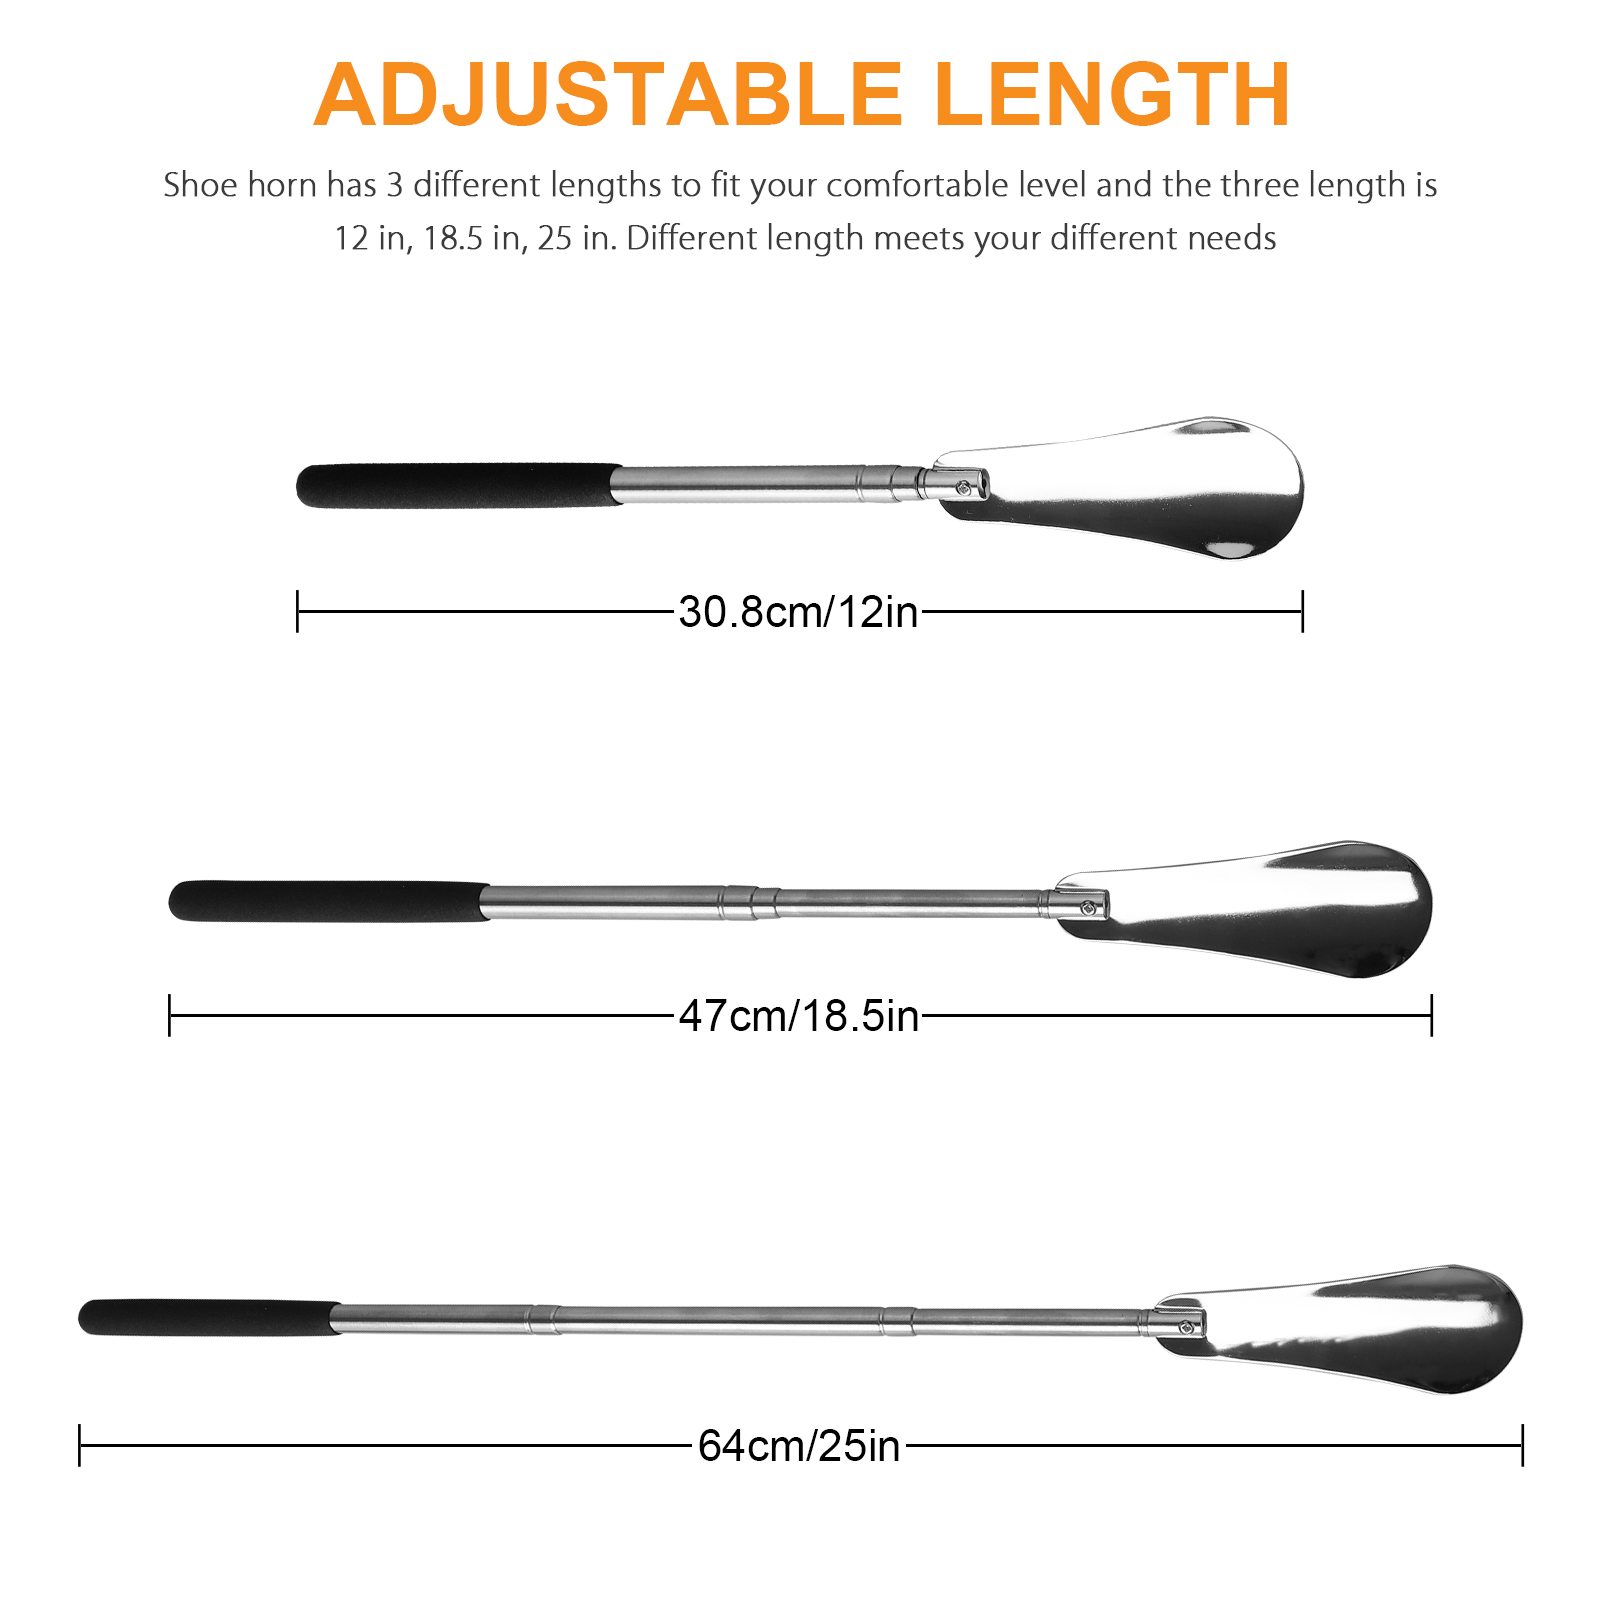 25-034-Adjustable-Stainless-Steel-Long-Handled-Metal-Shoe-Horn-Spoon-Shoehorn-Silver thumbnail 7